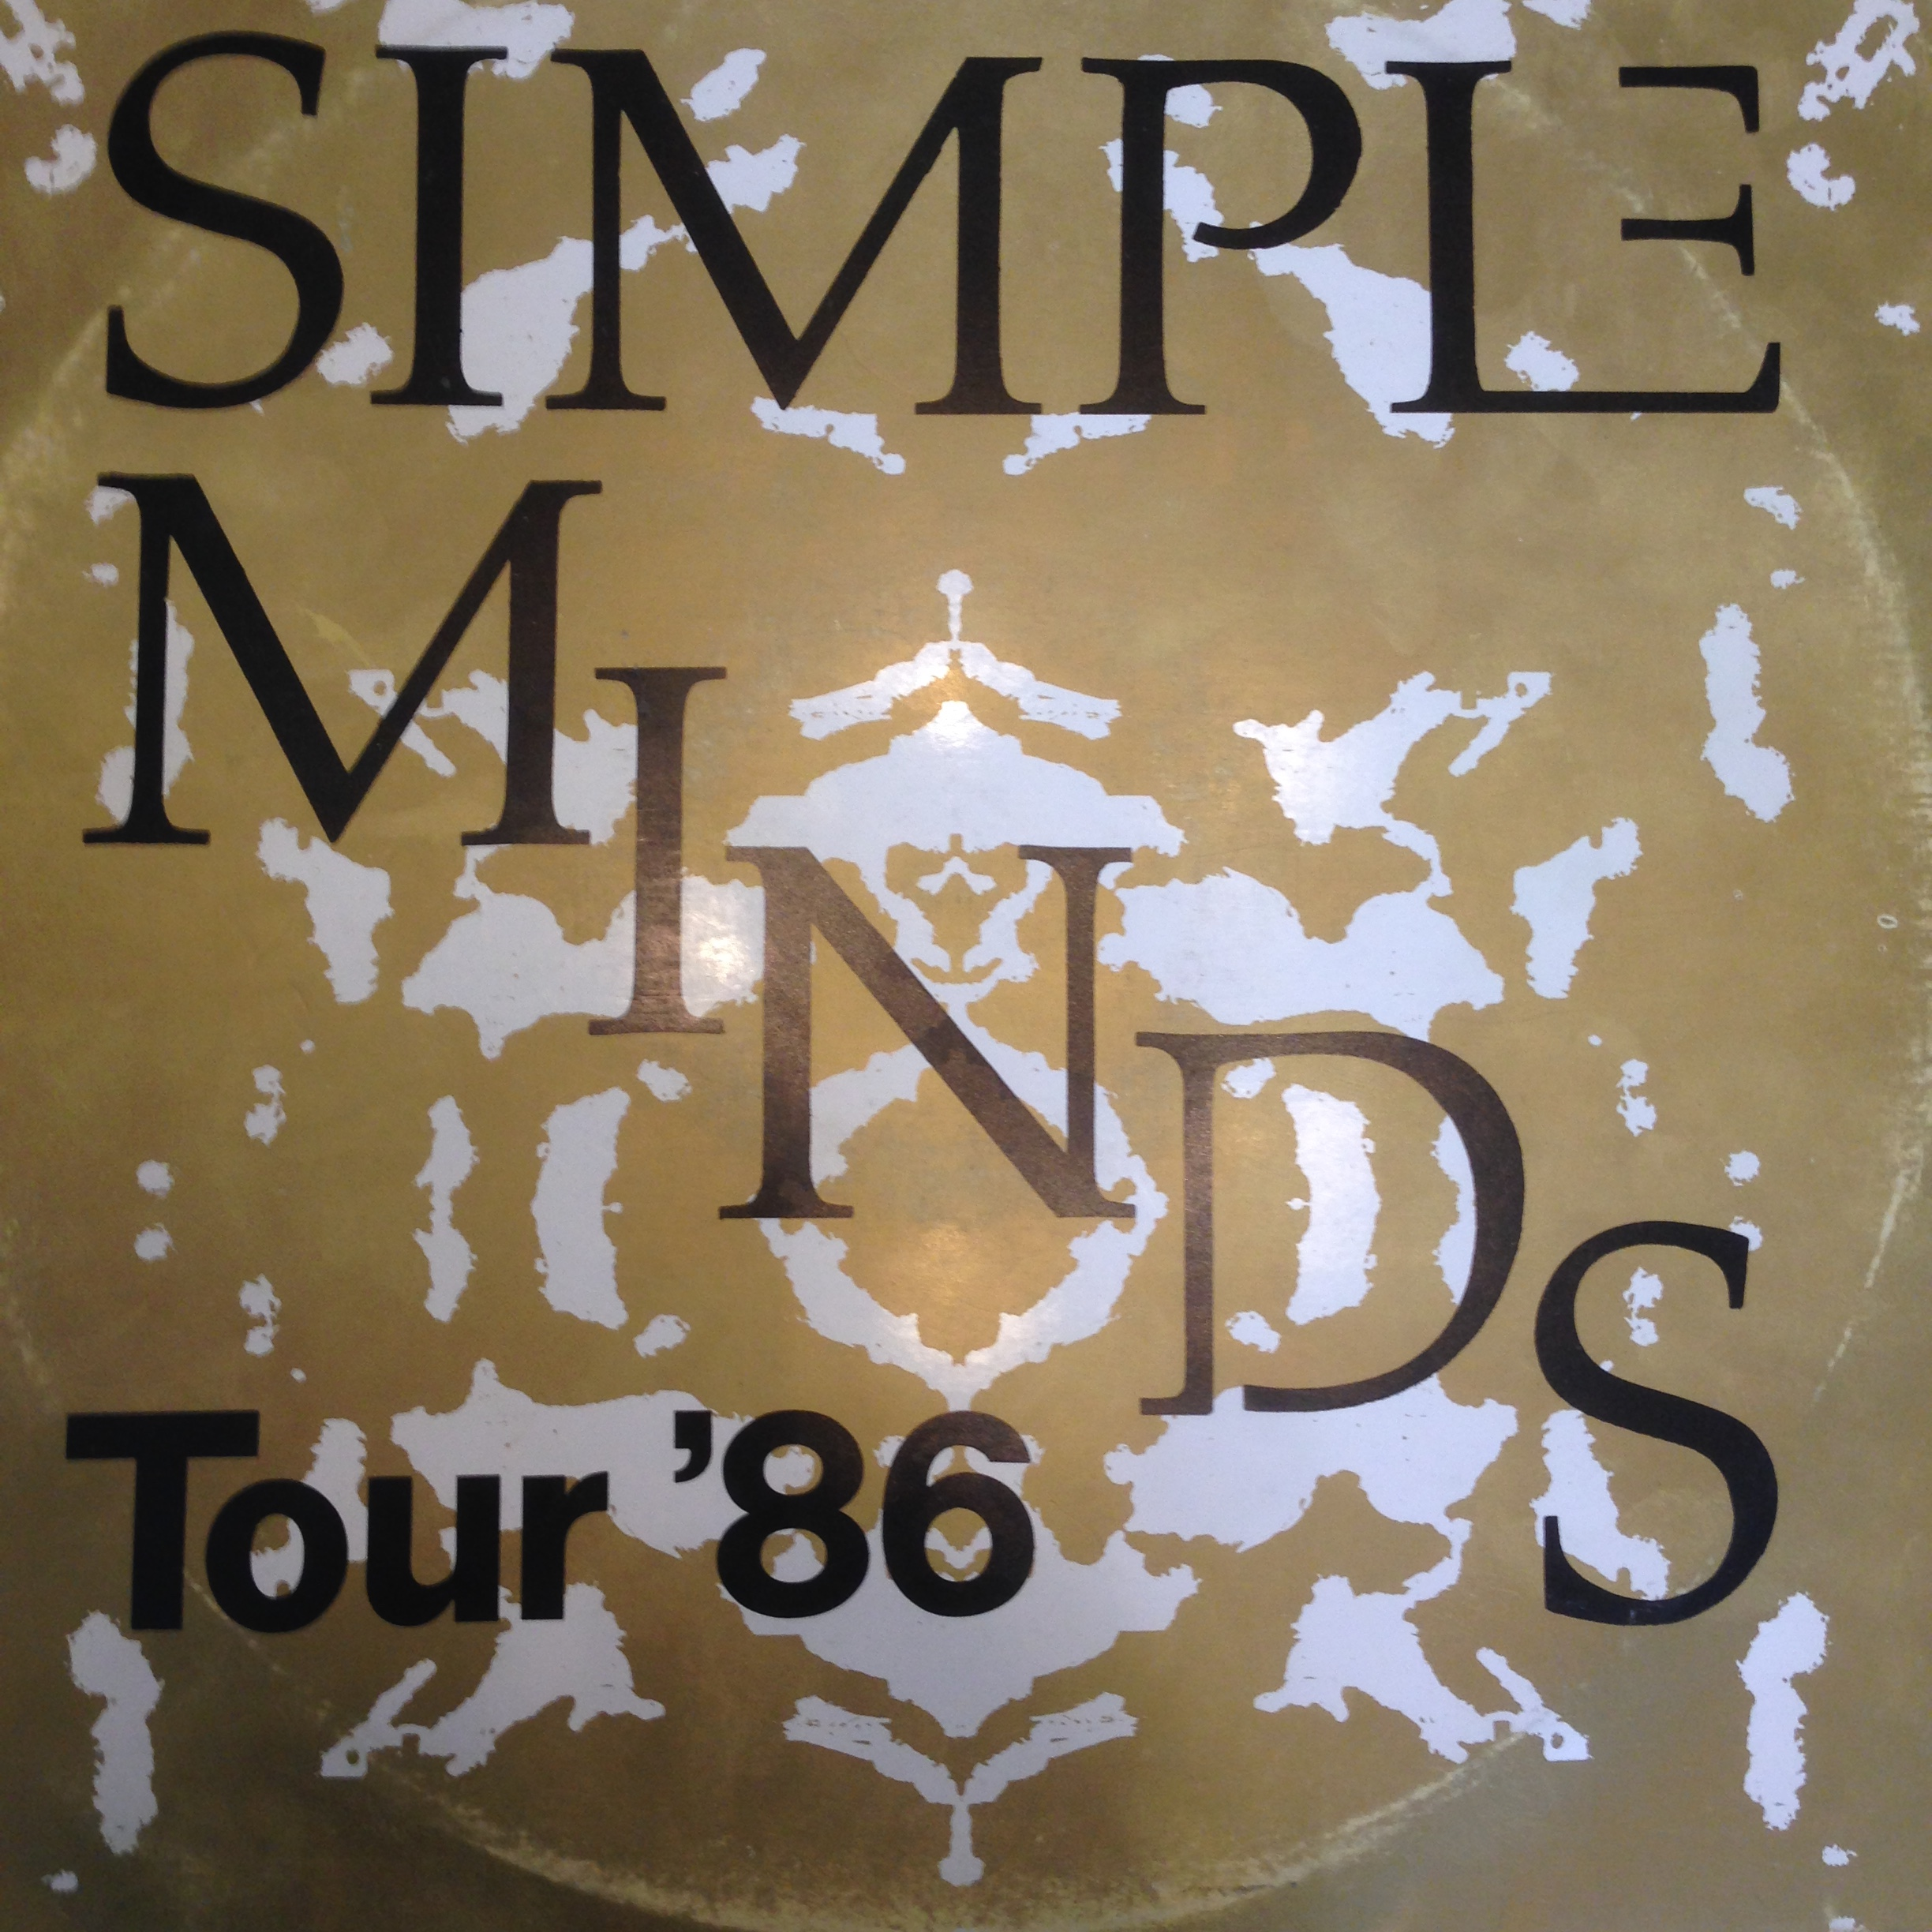 jaquettes4/Simple-Minds_Tour-86.jpg